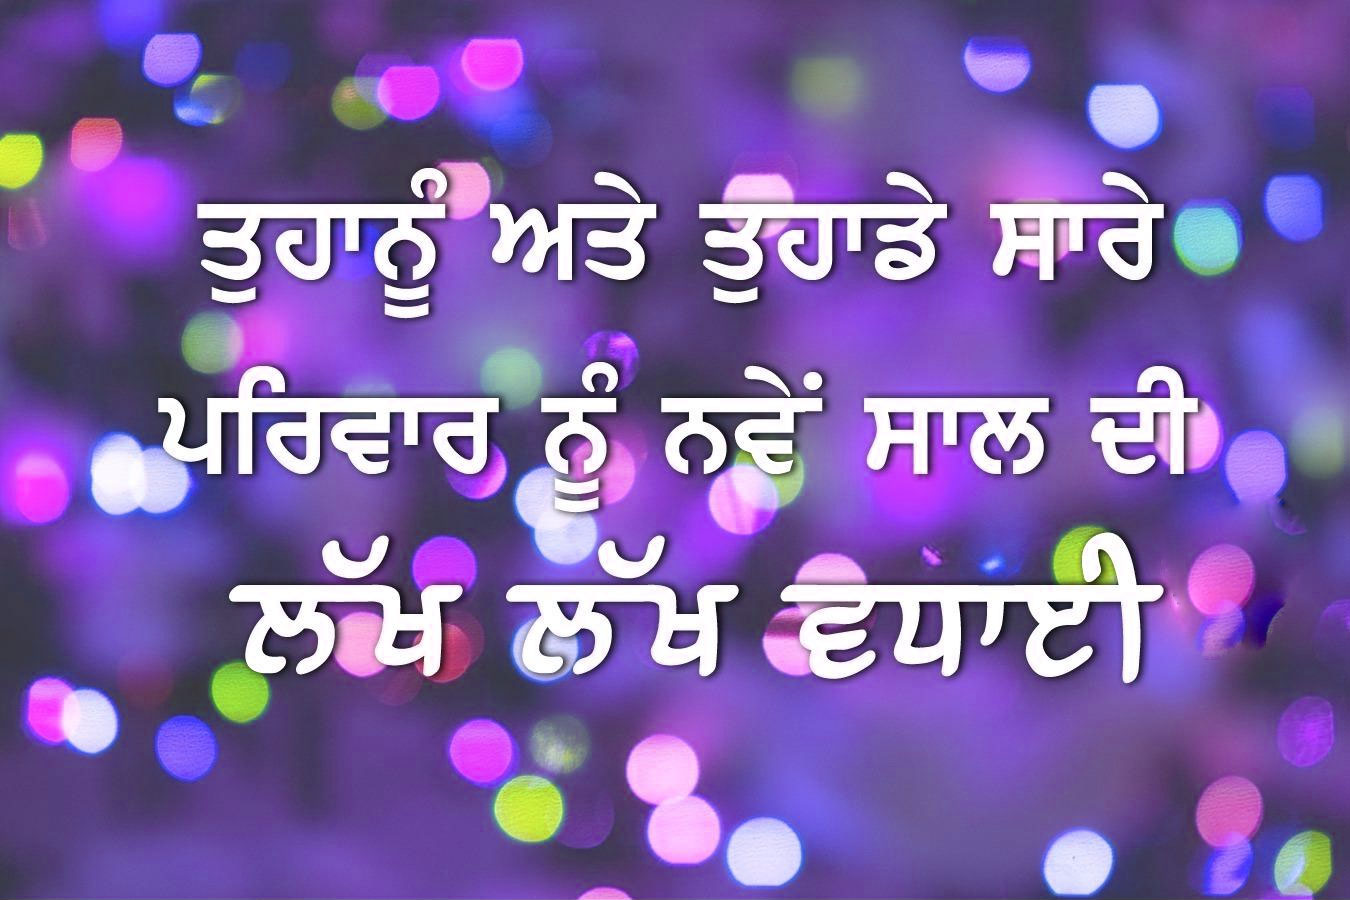 happy new year wishes in punjabi new year punjabi messages jpg 1350x900 2018 happy new years